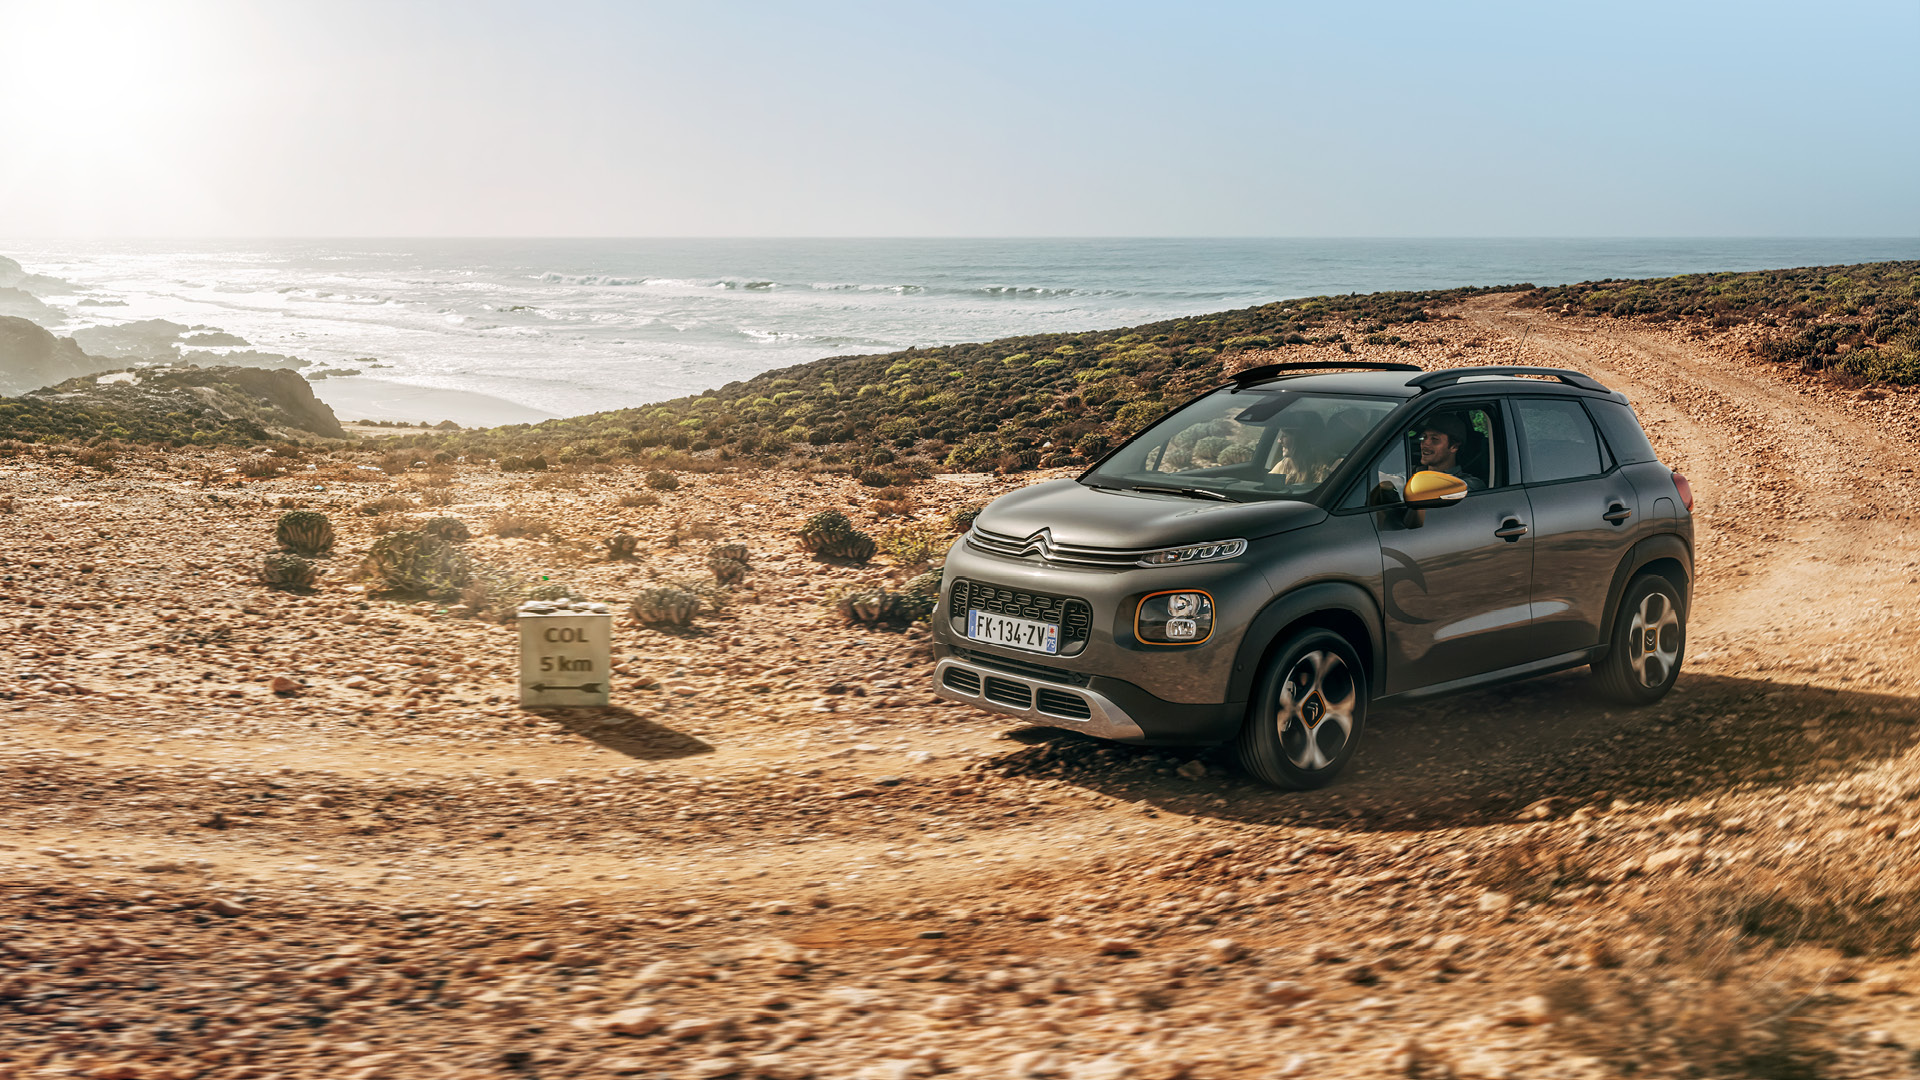 Citroën C3 Aircross SUV Limited Edition Rip Curl